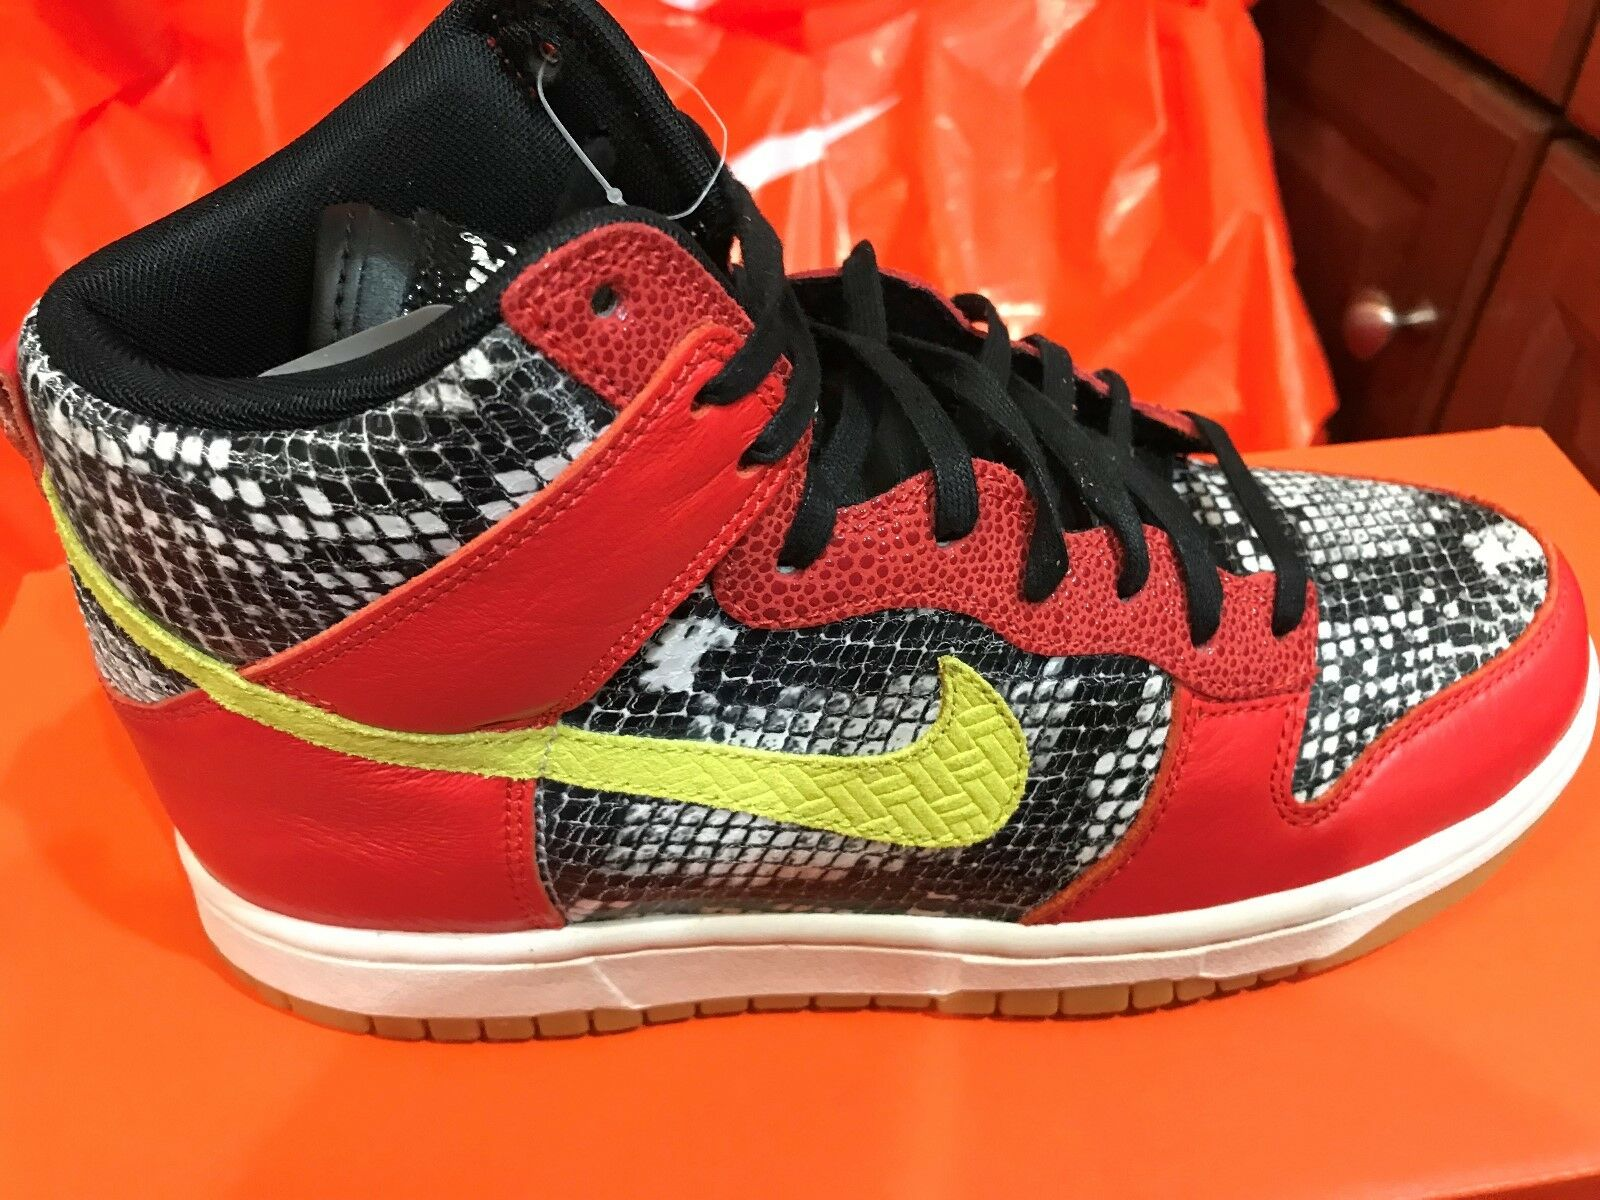 New Nike Womens Dunk Hi LX Lux Shoes Sneakers 881233-800 sz 7 Python FREE SHIP